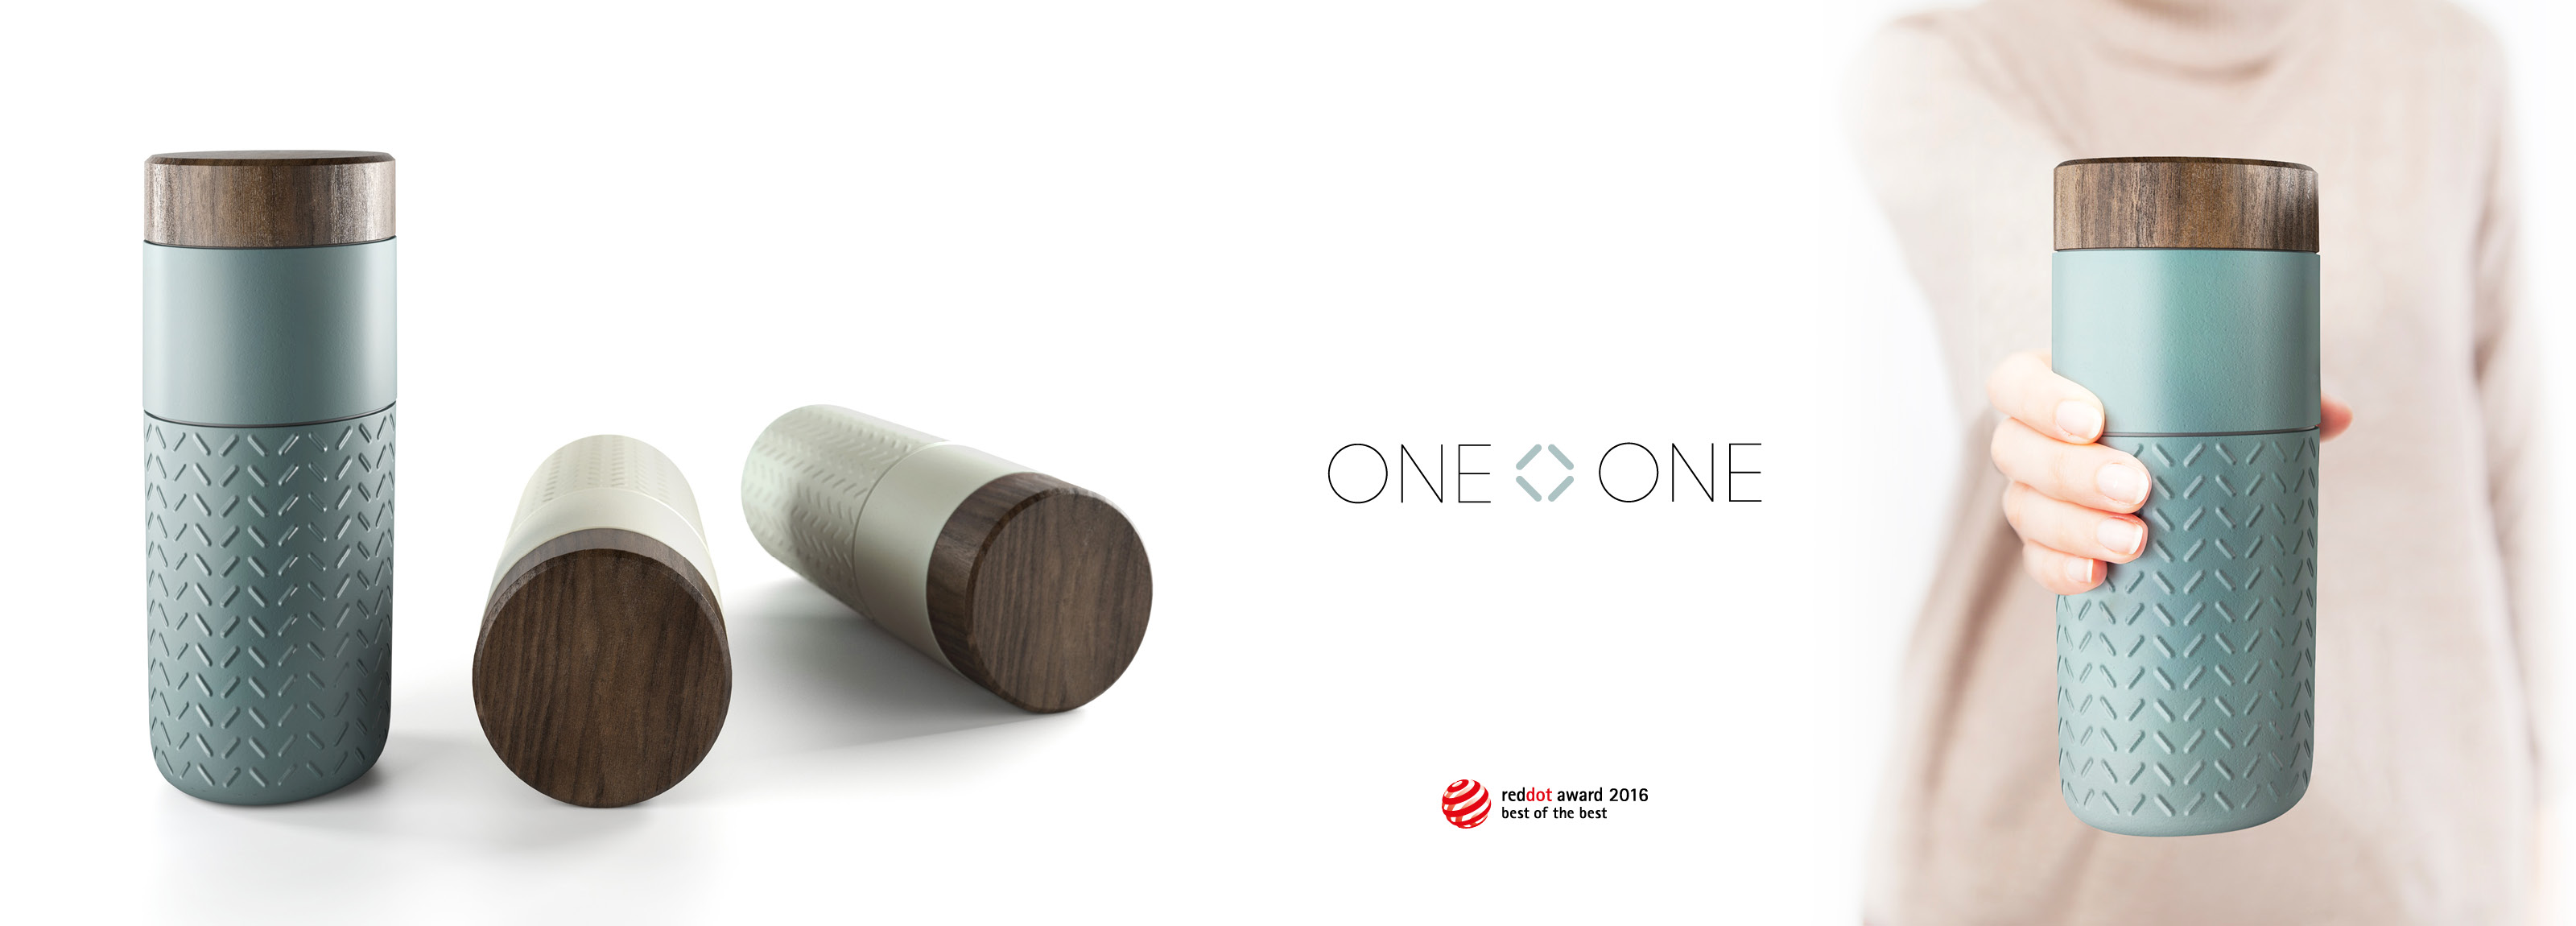 One-O-One, vincitrice del Red Dot Design Award, introduce un nuovo concetto di accessorio firmata Hangar Design Group